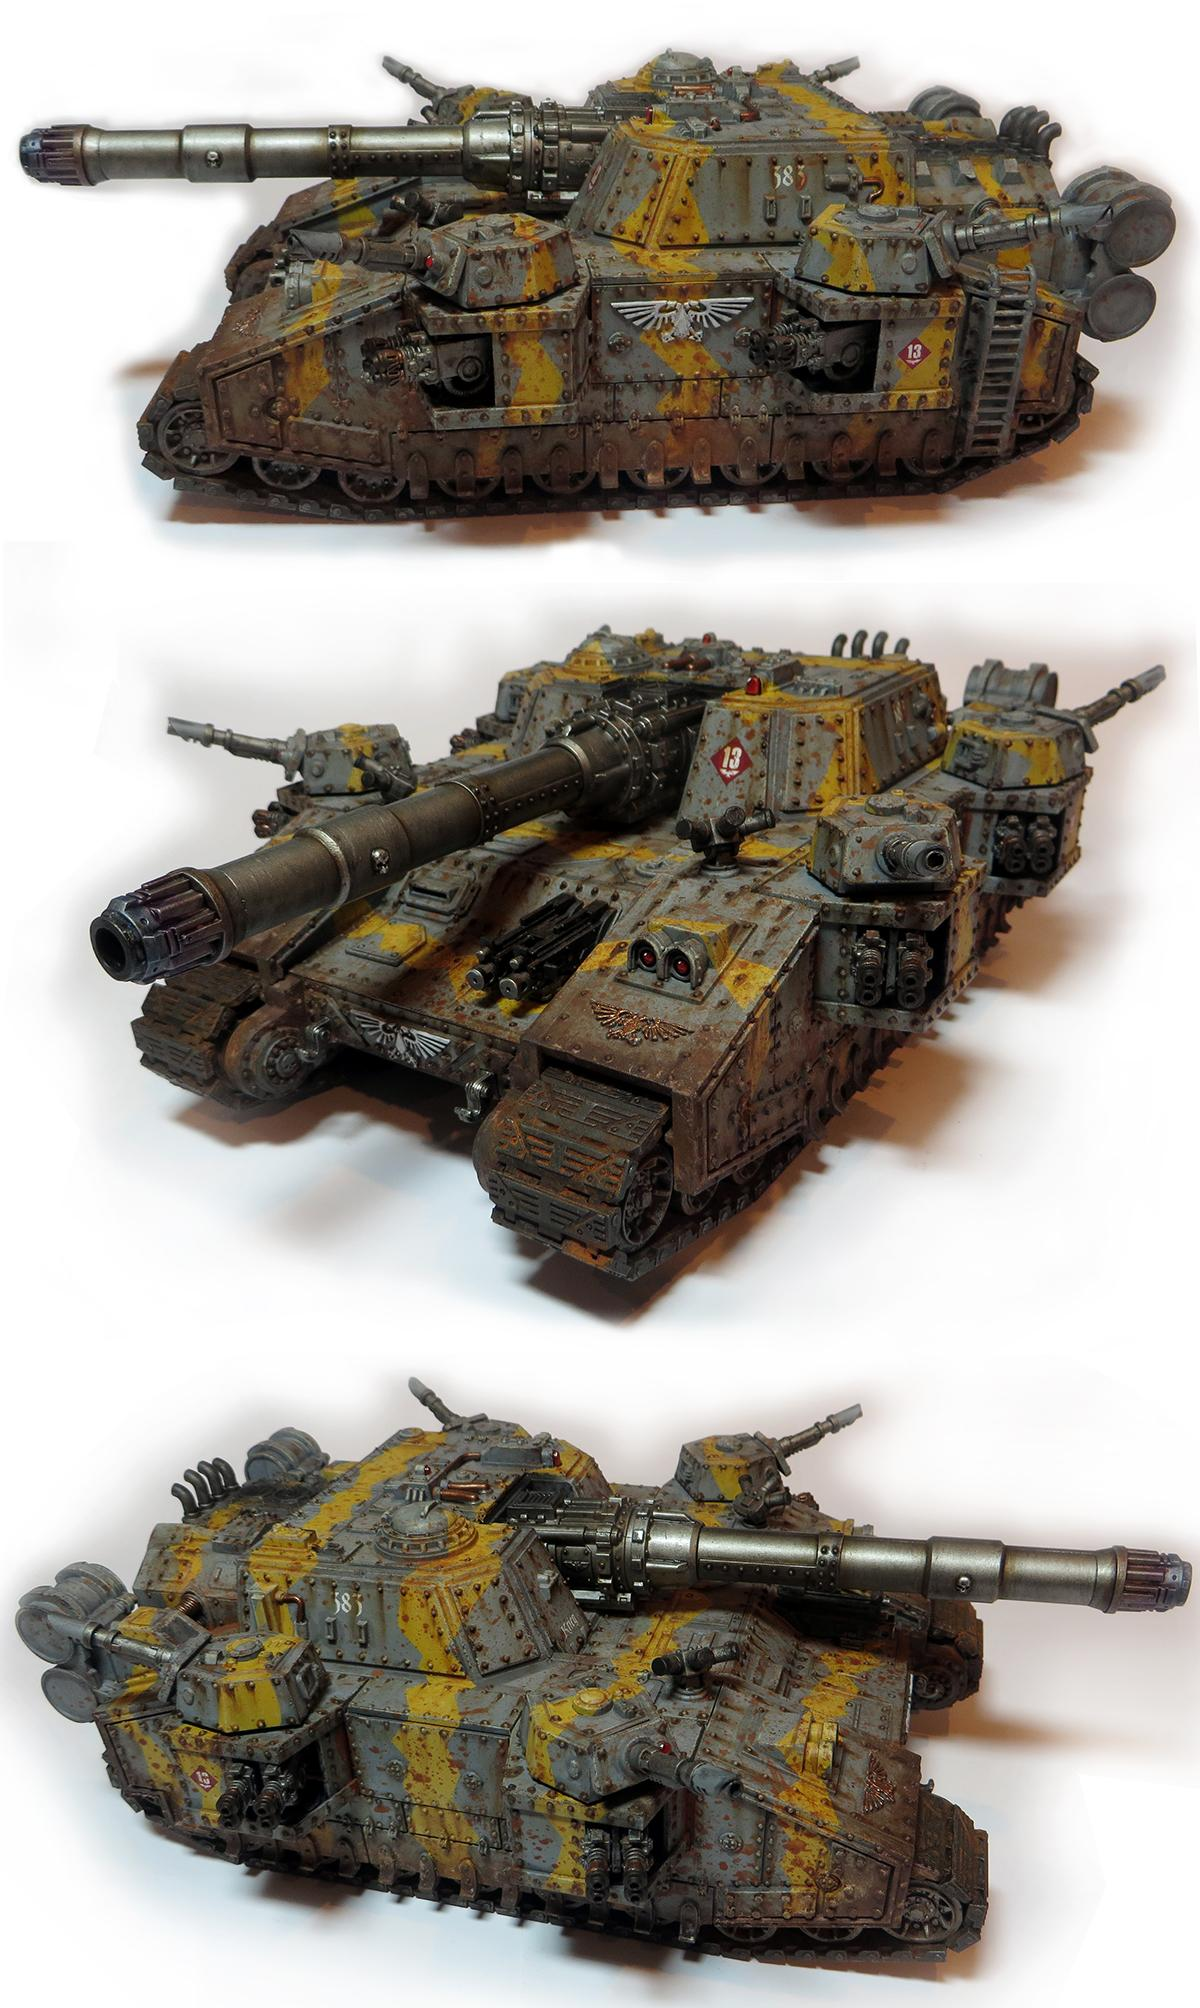 Astra Militarum, Baneblade, Bangblade, Battle-worn, Death Korps of Krieg, Dirty, Imperial Guard, Muddy, Rusty, Shadowsword, Stormsword, Tank, Weathered